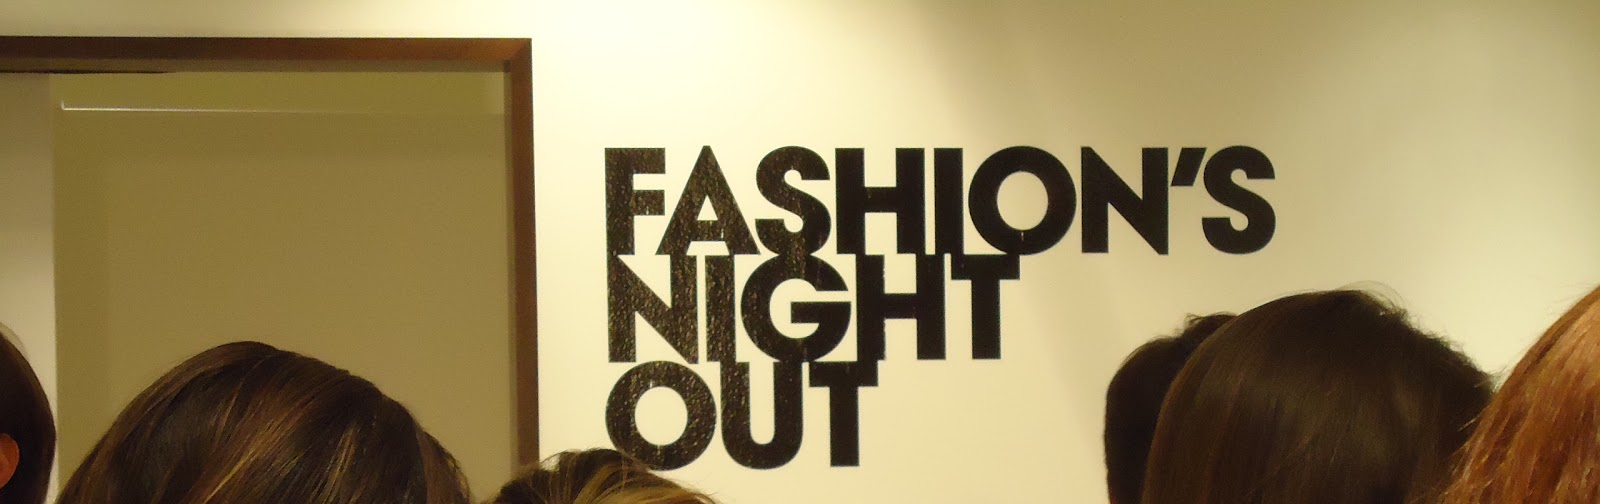 Fashion Night Out, Neiman Marcus